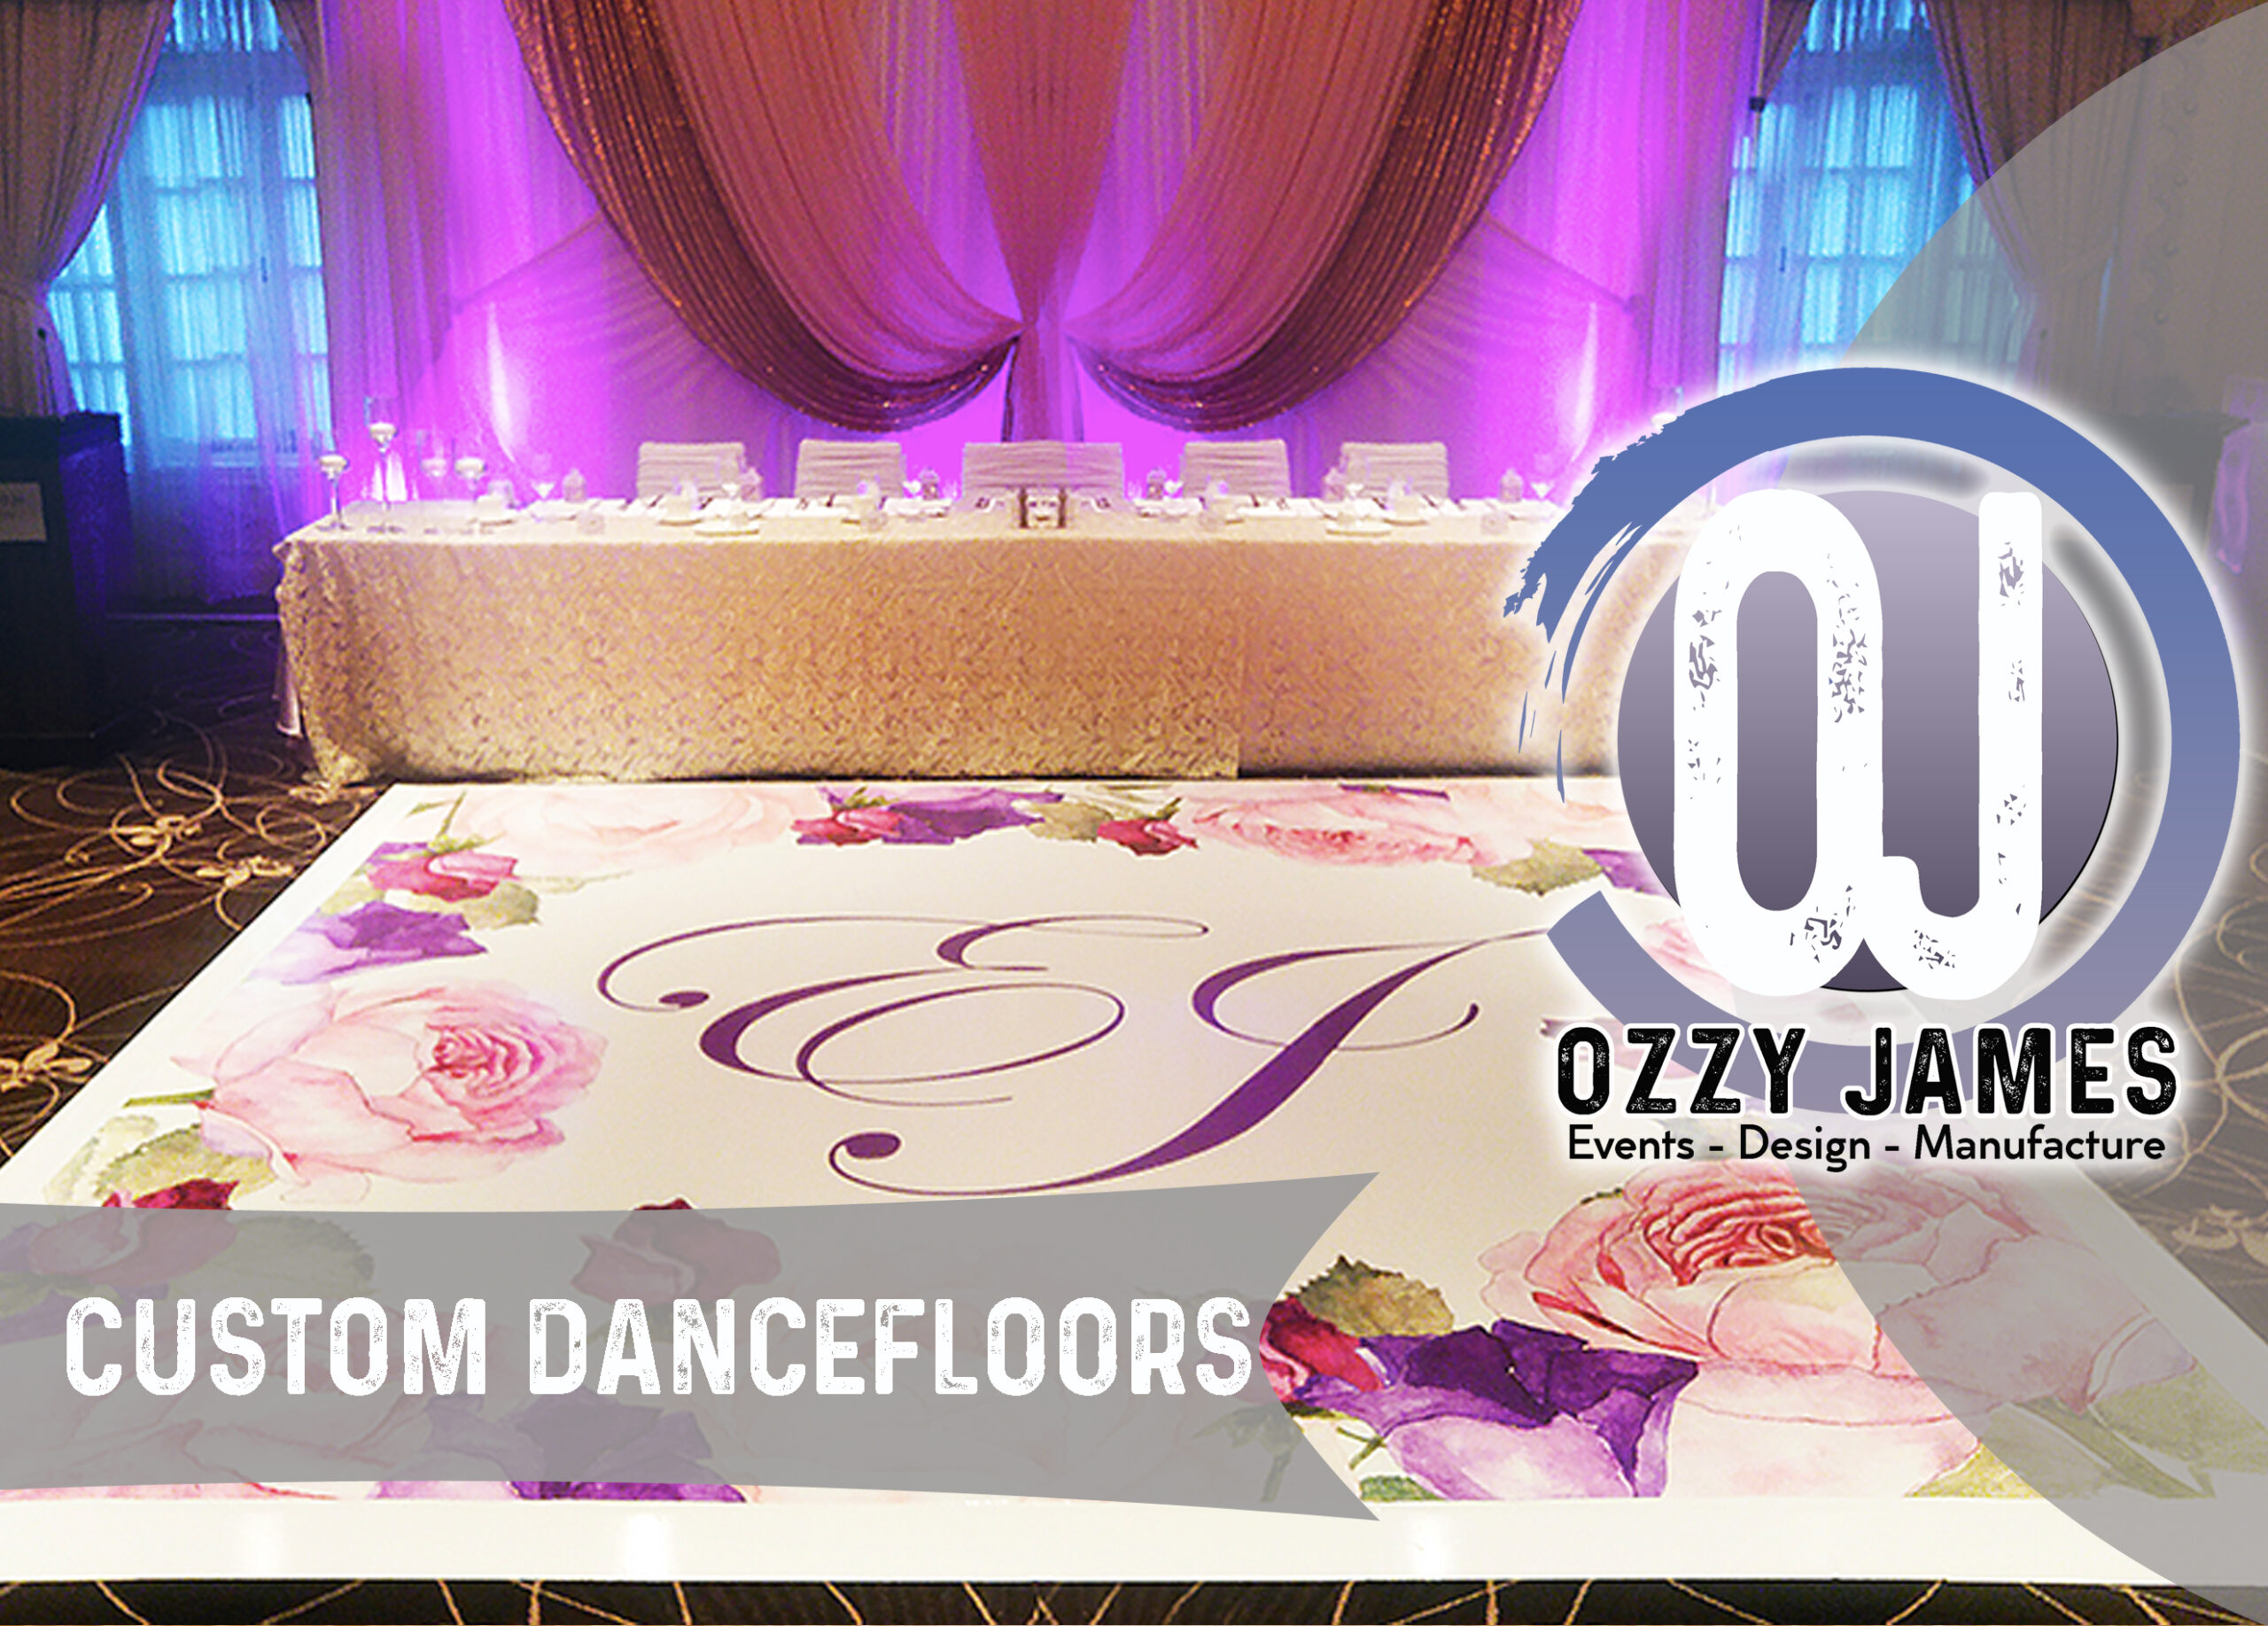 custom-dancefloors-copy-scaled